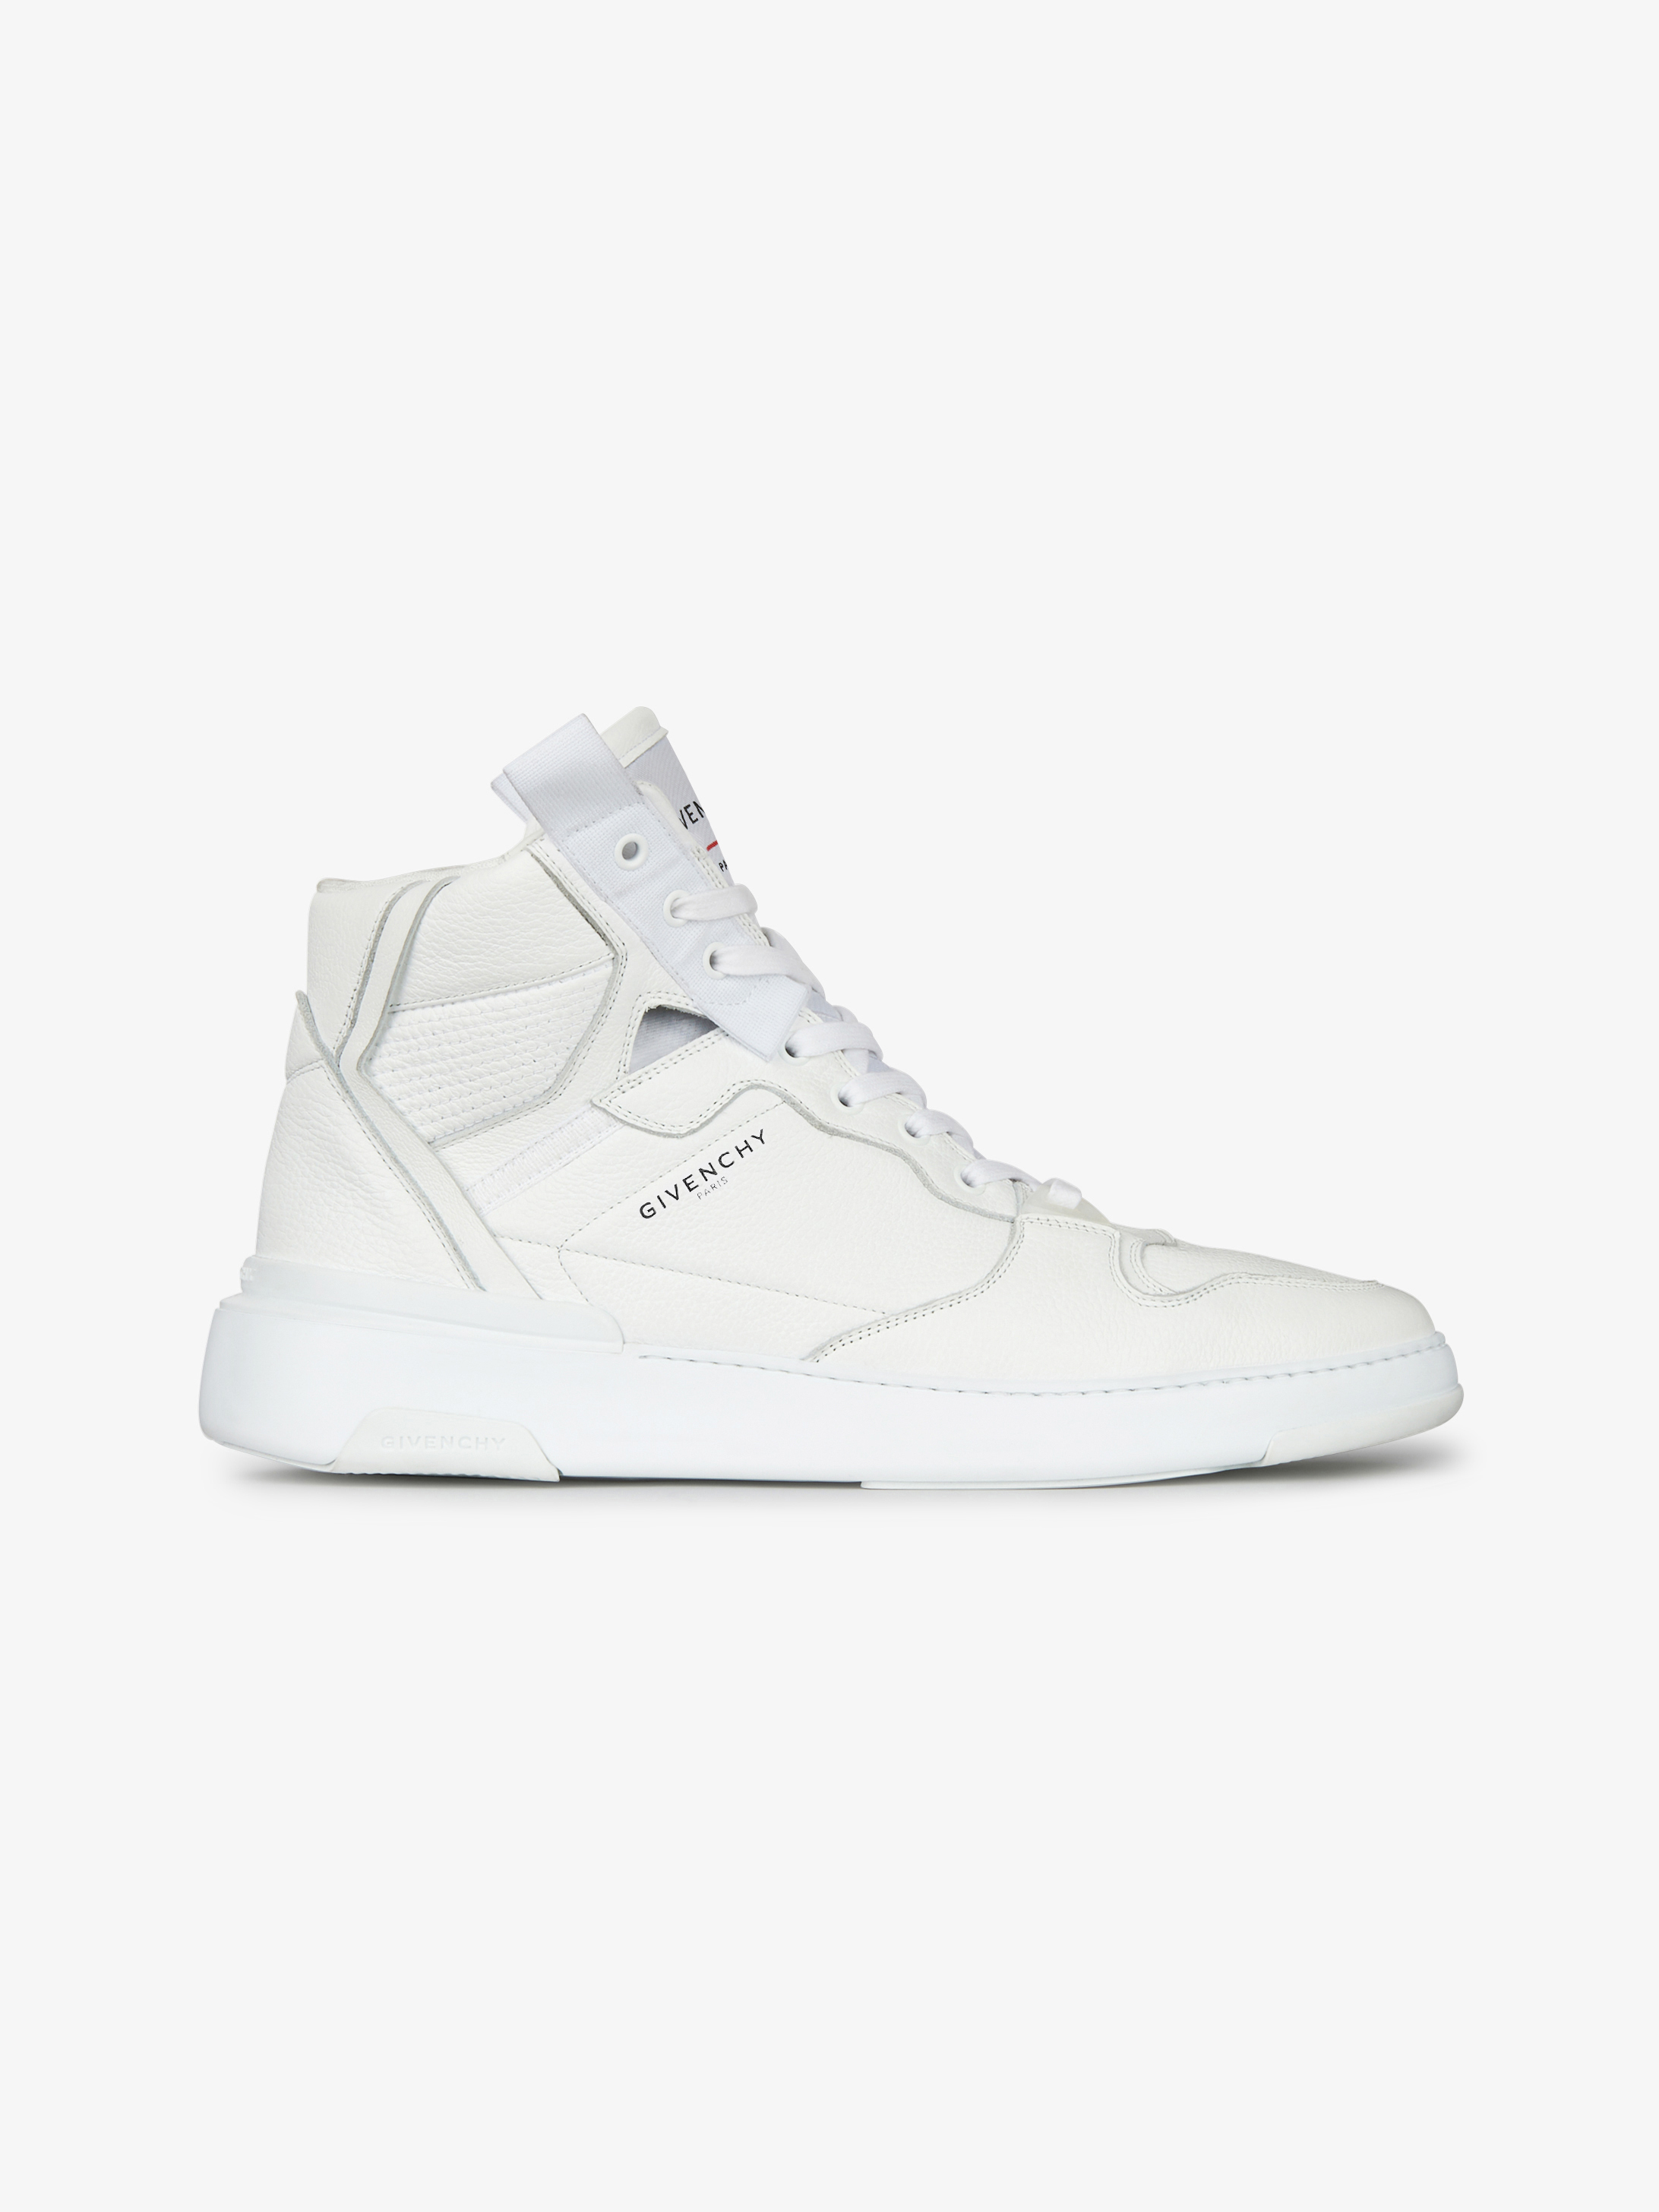 Wing mid sneakers in leather